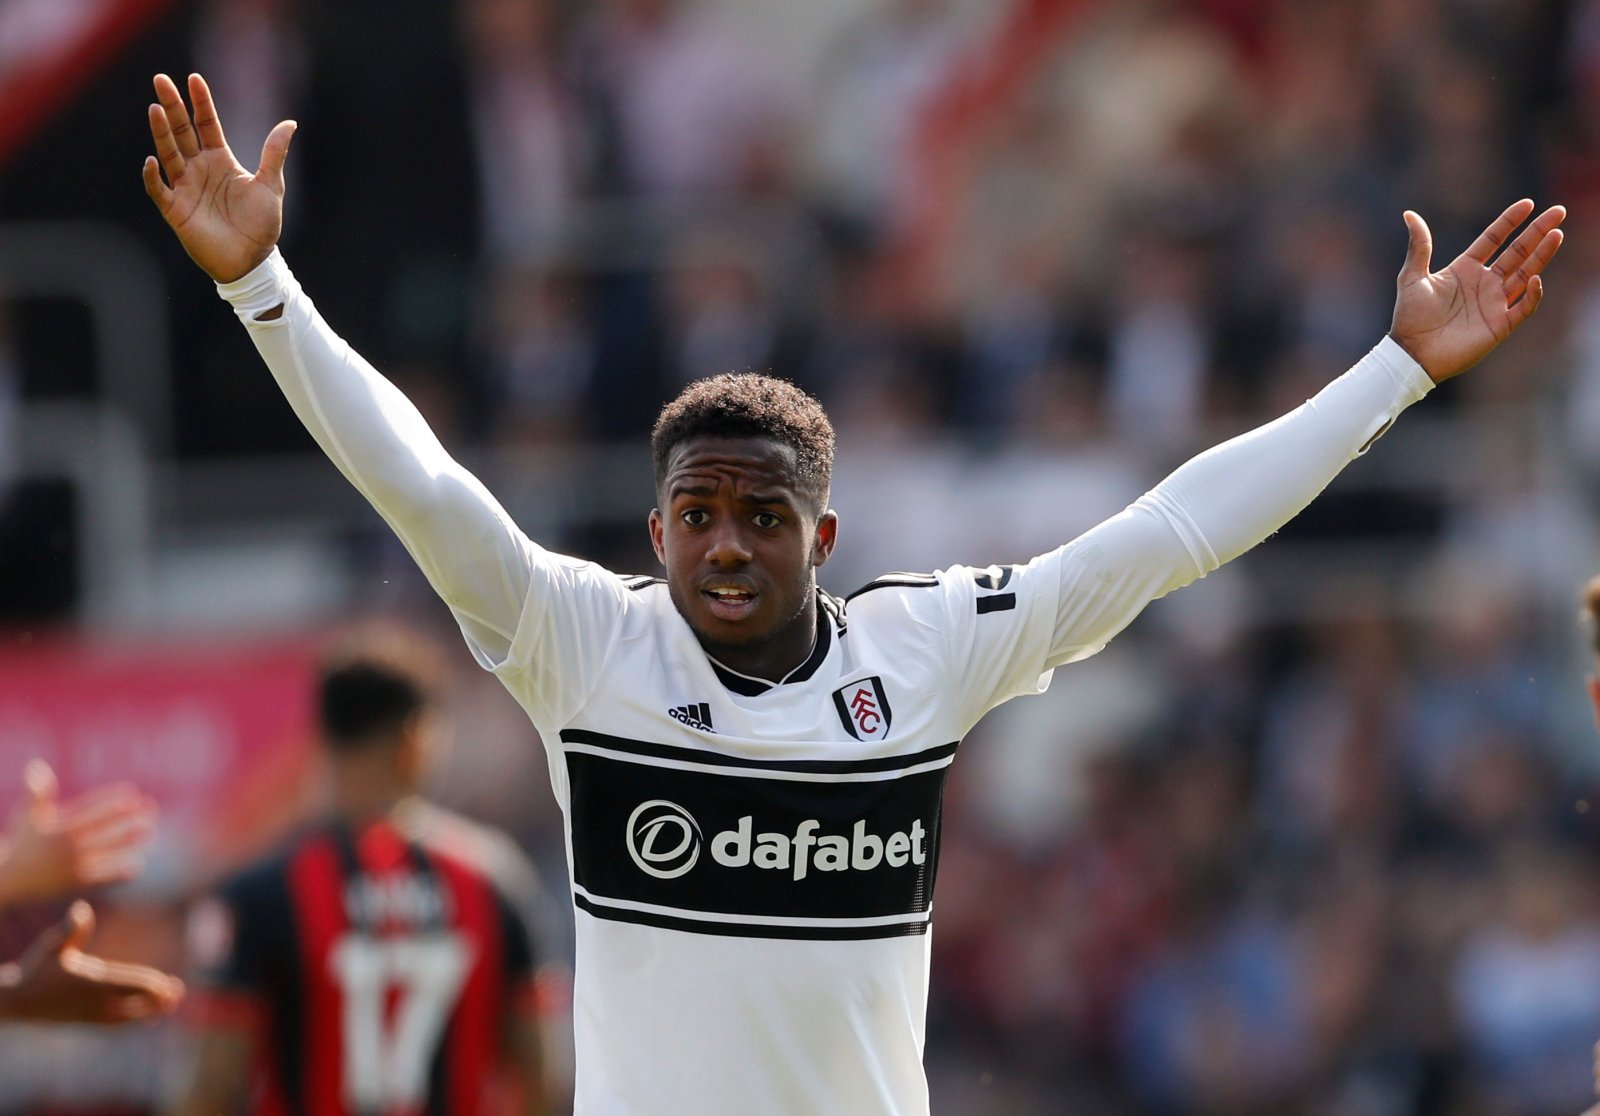 Tottenham: Ryan Sessegnon move makes perfect sense in N17